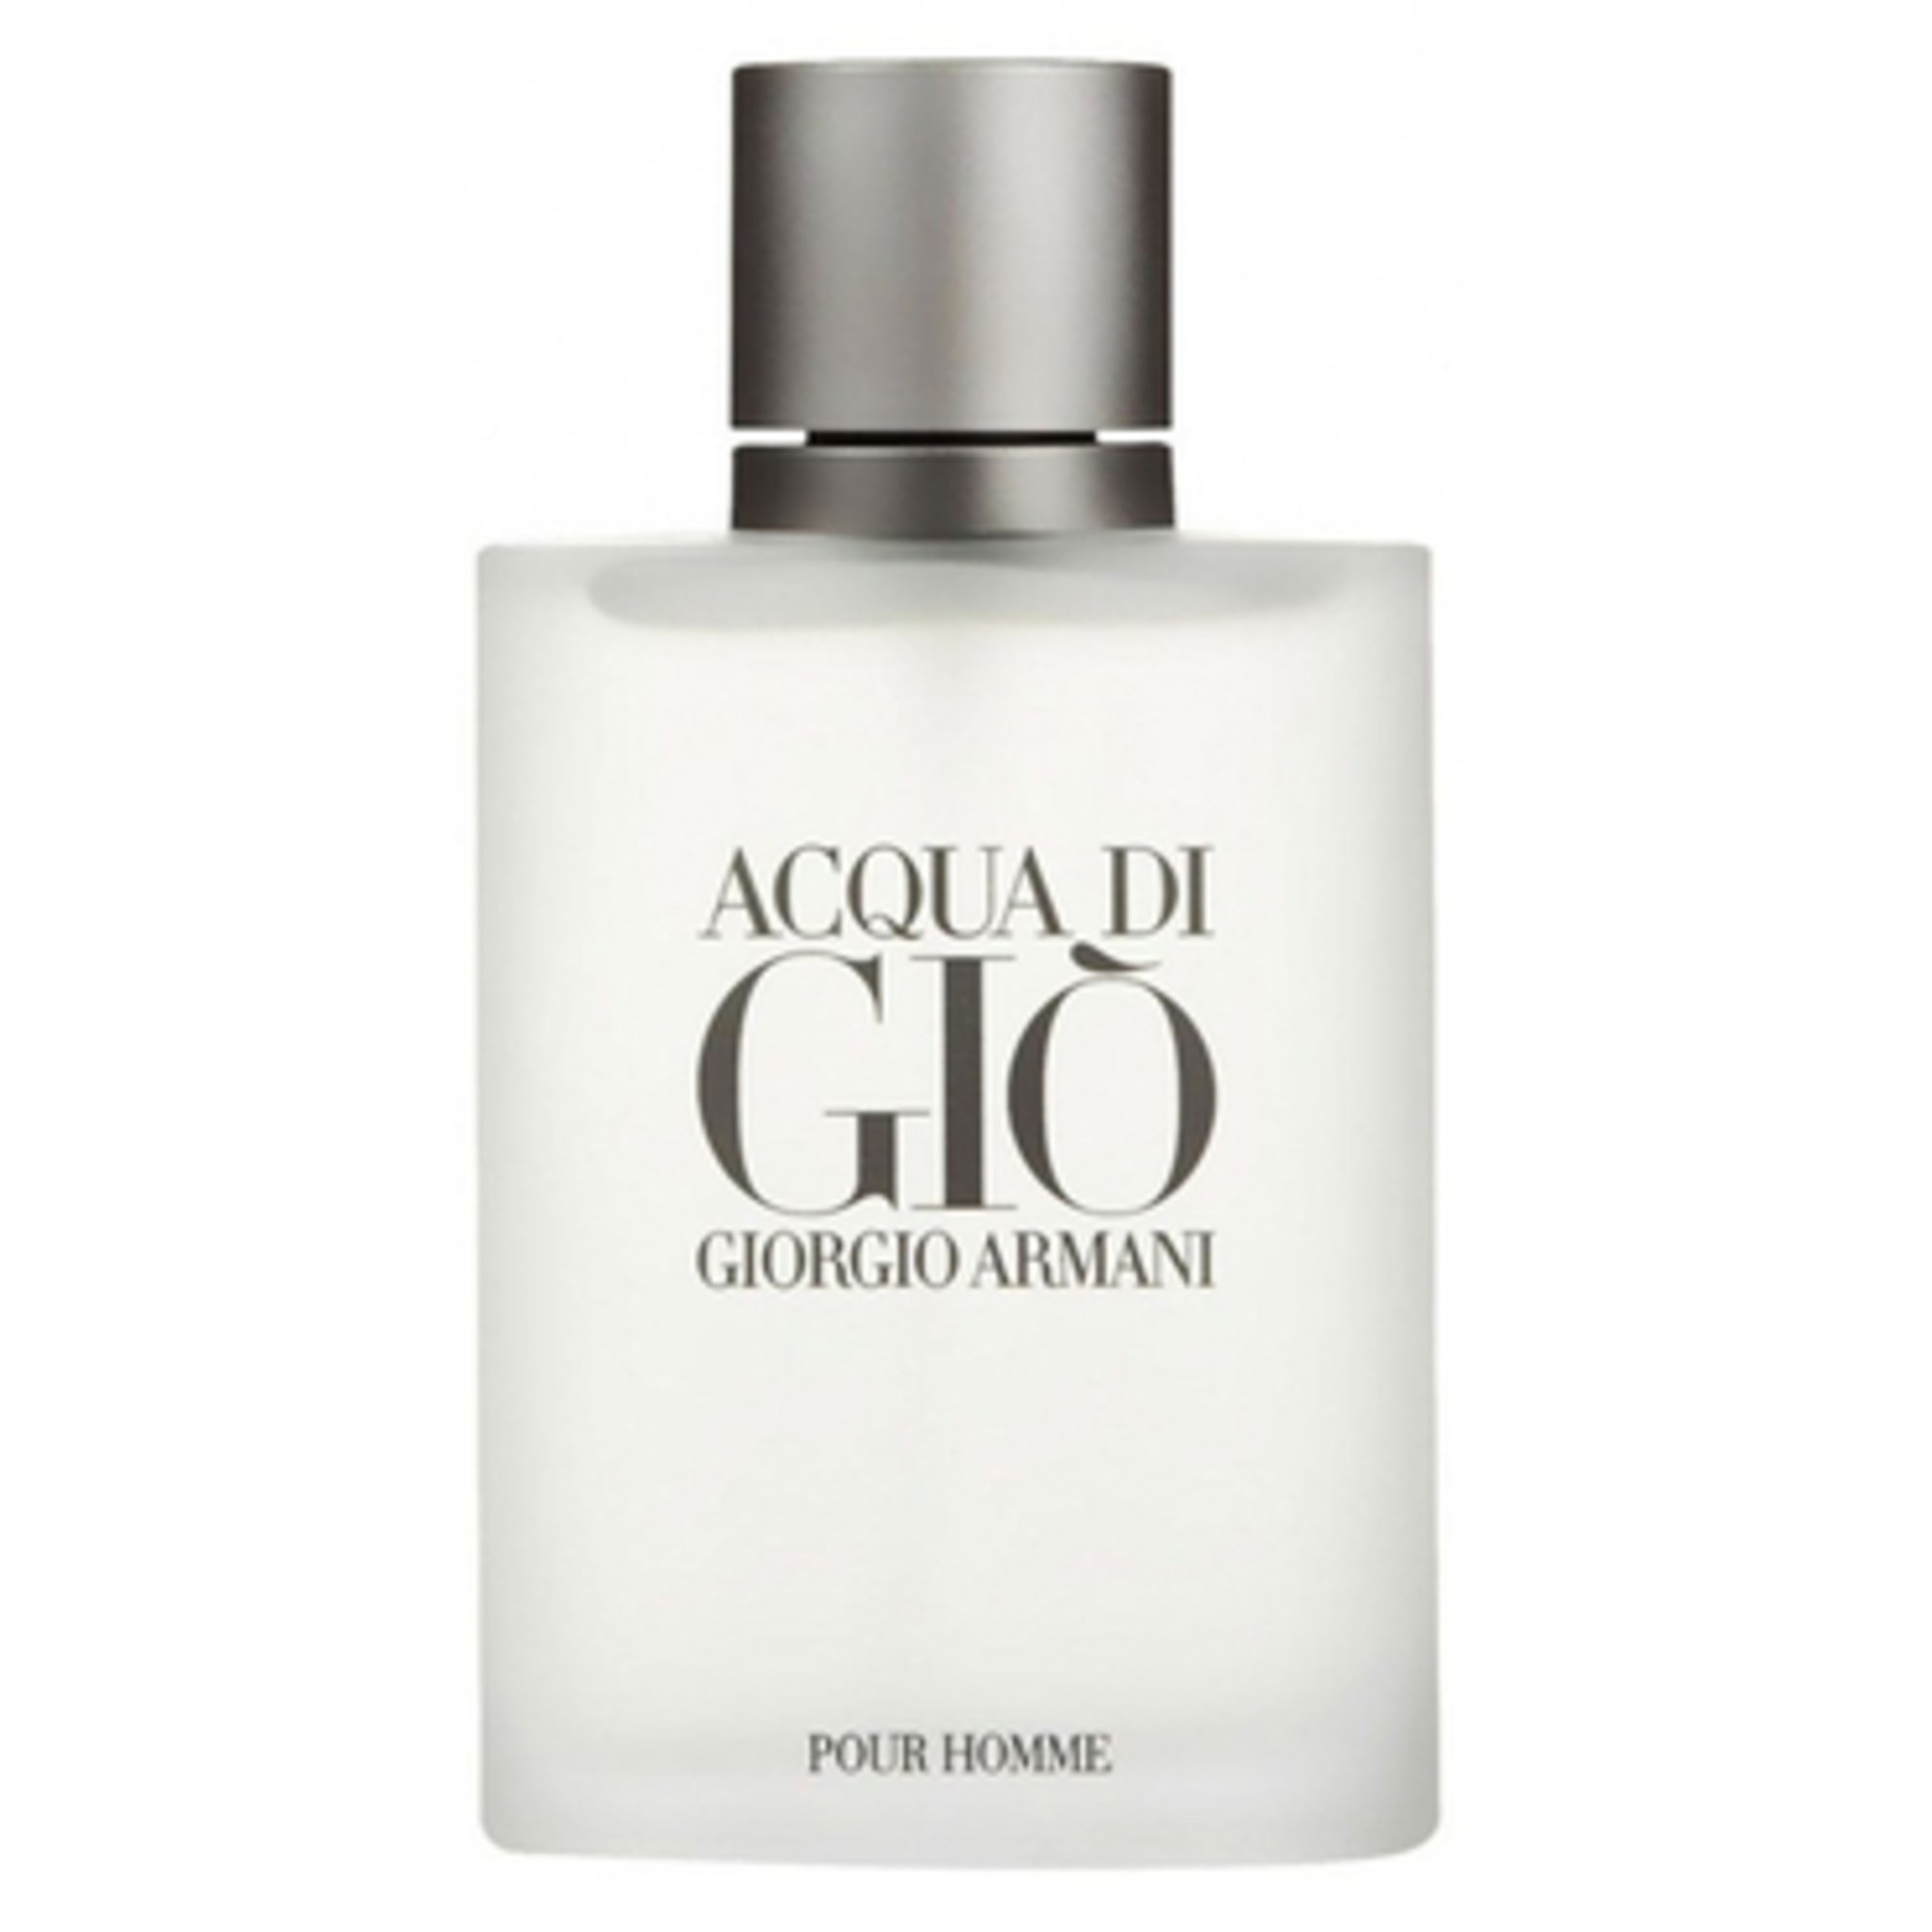 Buy Exchange Armani perfume for men picture trends